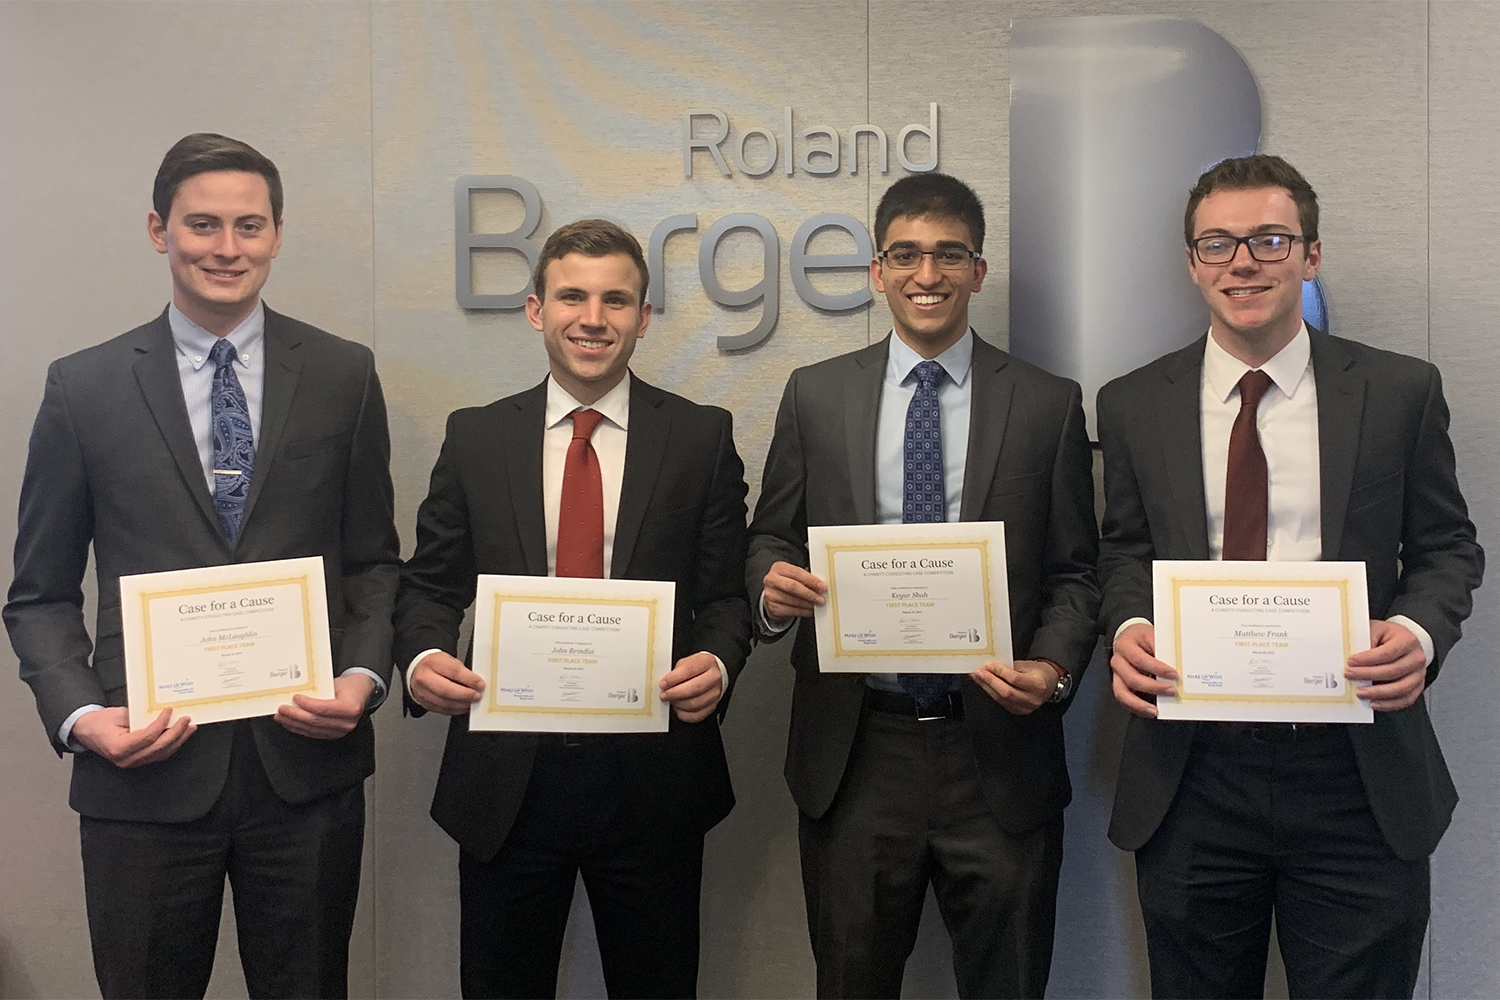 """Left to right, John McLaughlin, John Brindisi, Keyur Shah, and Matthew Frank accepting their awards at the """"Case for a Cause"""" competition (Photo courtesy of John McLaughlin)"""